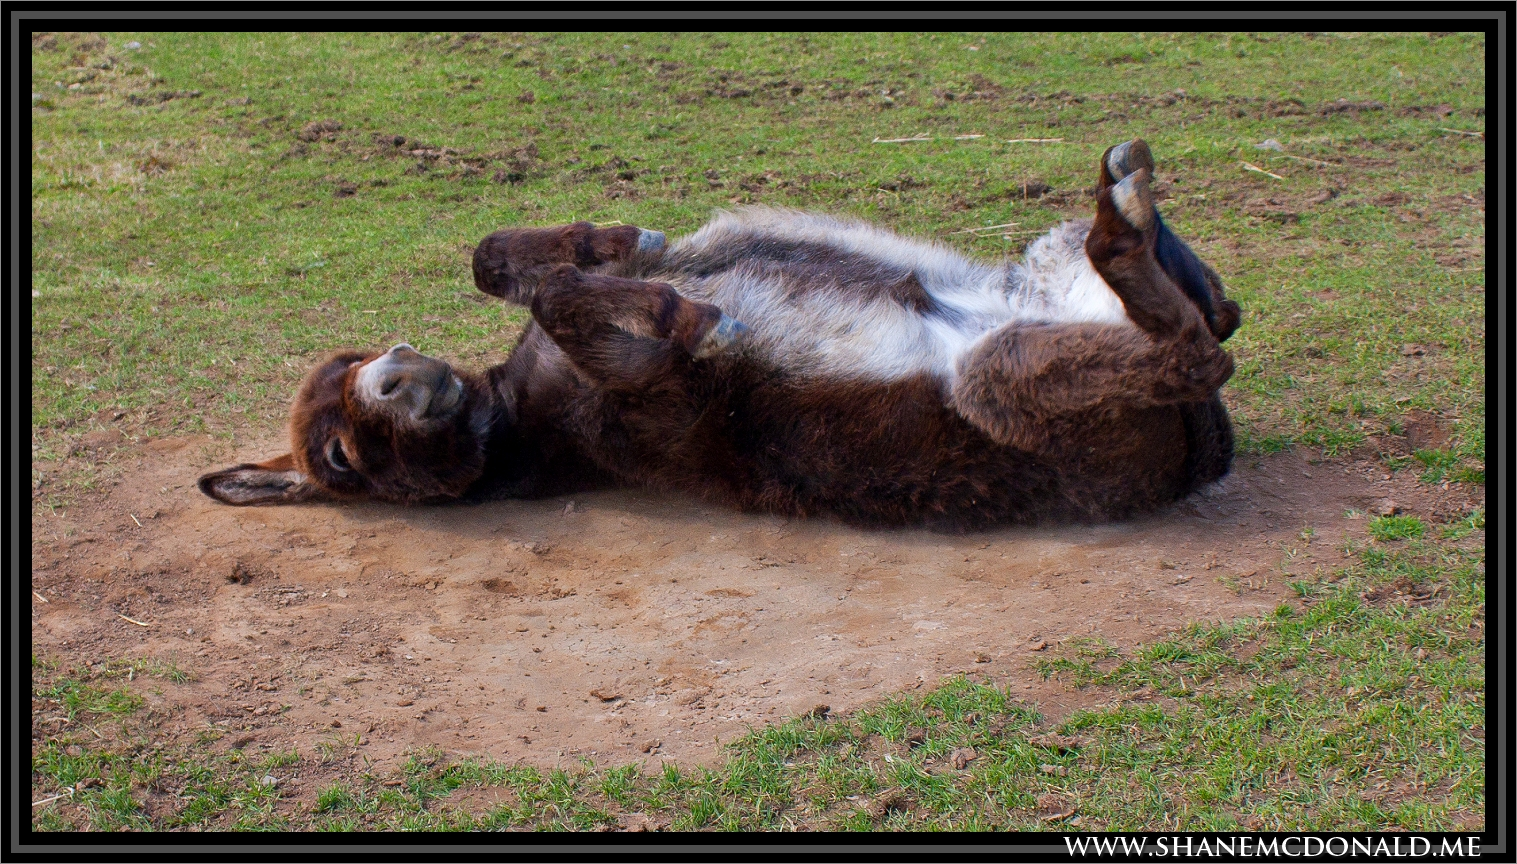 Ass Lying Down - Ass Photo, Photo of an Ass on the Ground with a funny expression on his face : Ass Face Smile